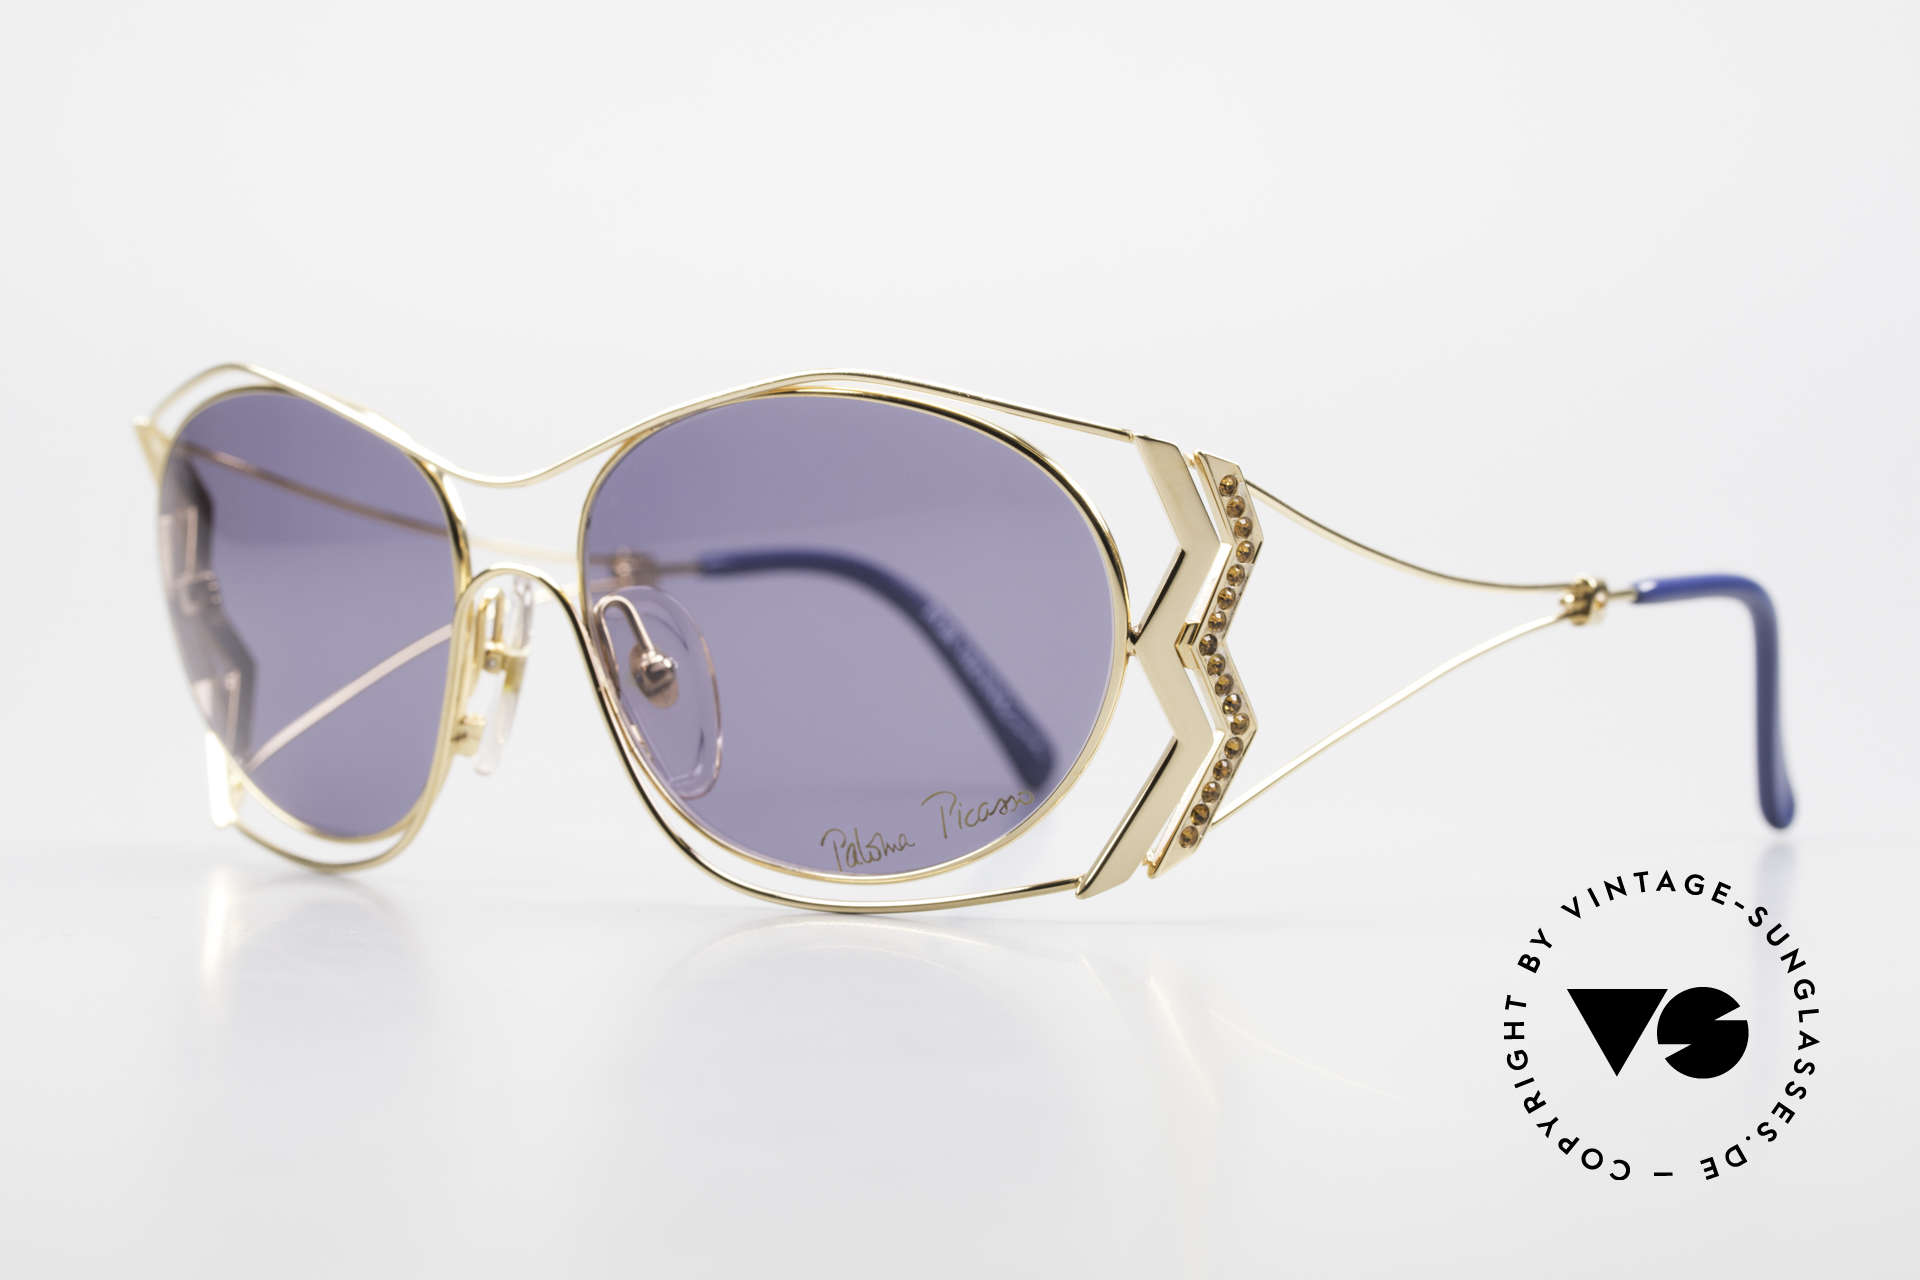 Paloma Picasso 3707 90's Sunglasses Gold-Plated, probably the most beautiful vintage model by Picasso, Made for Women